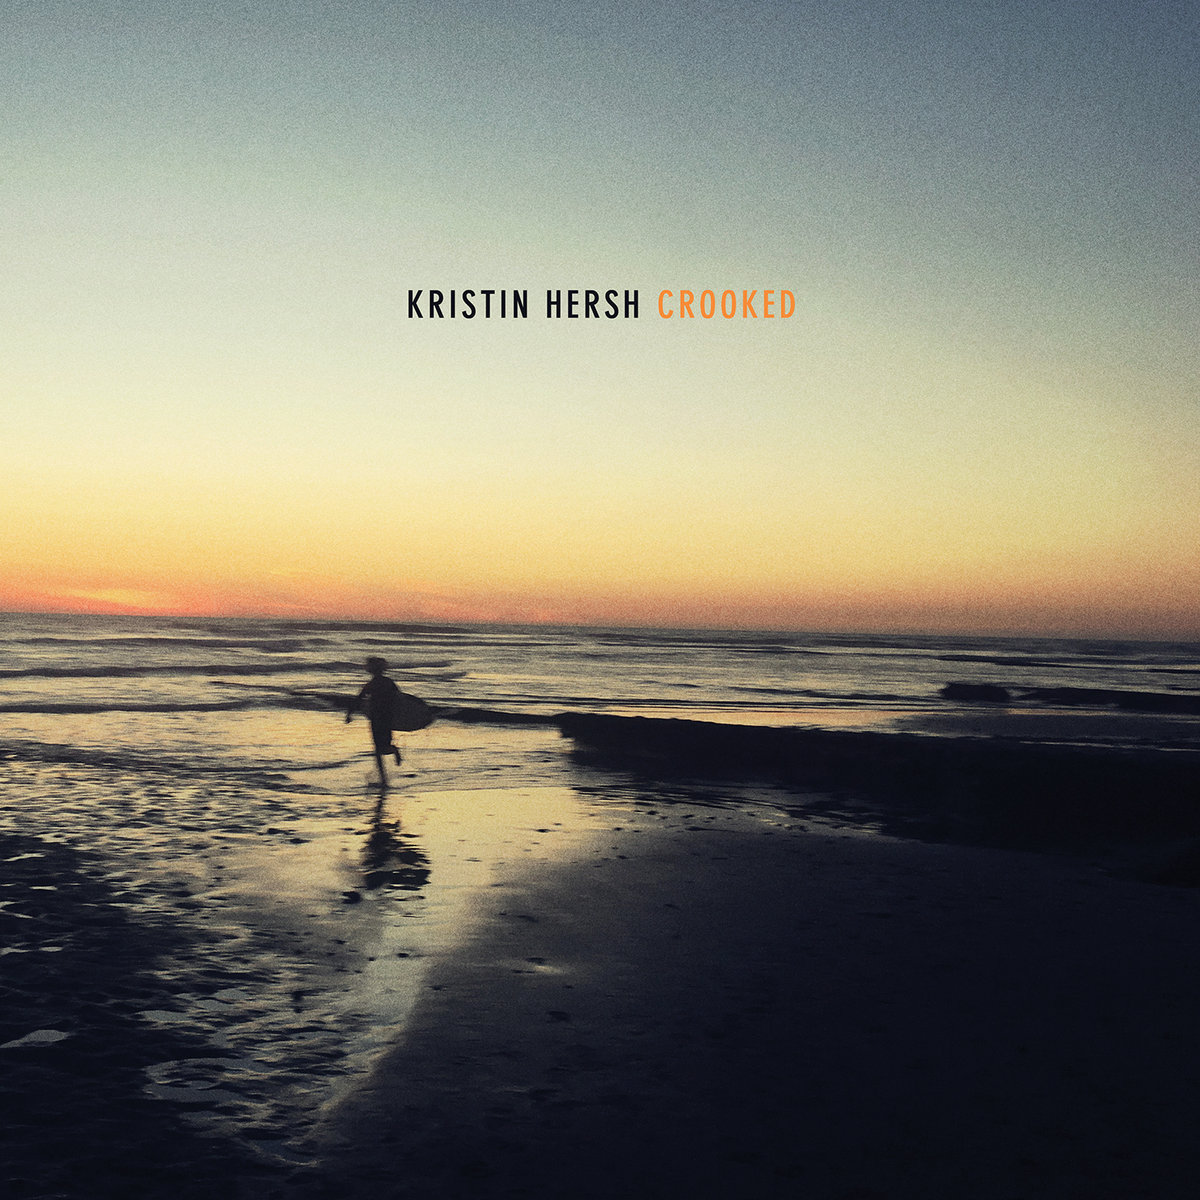 Kristin Hersh Crooked